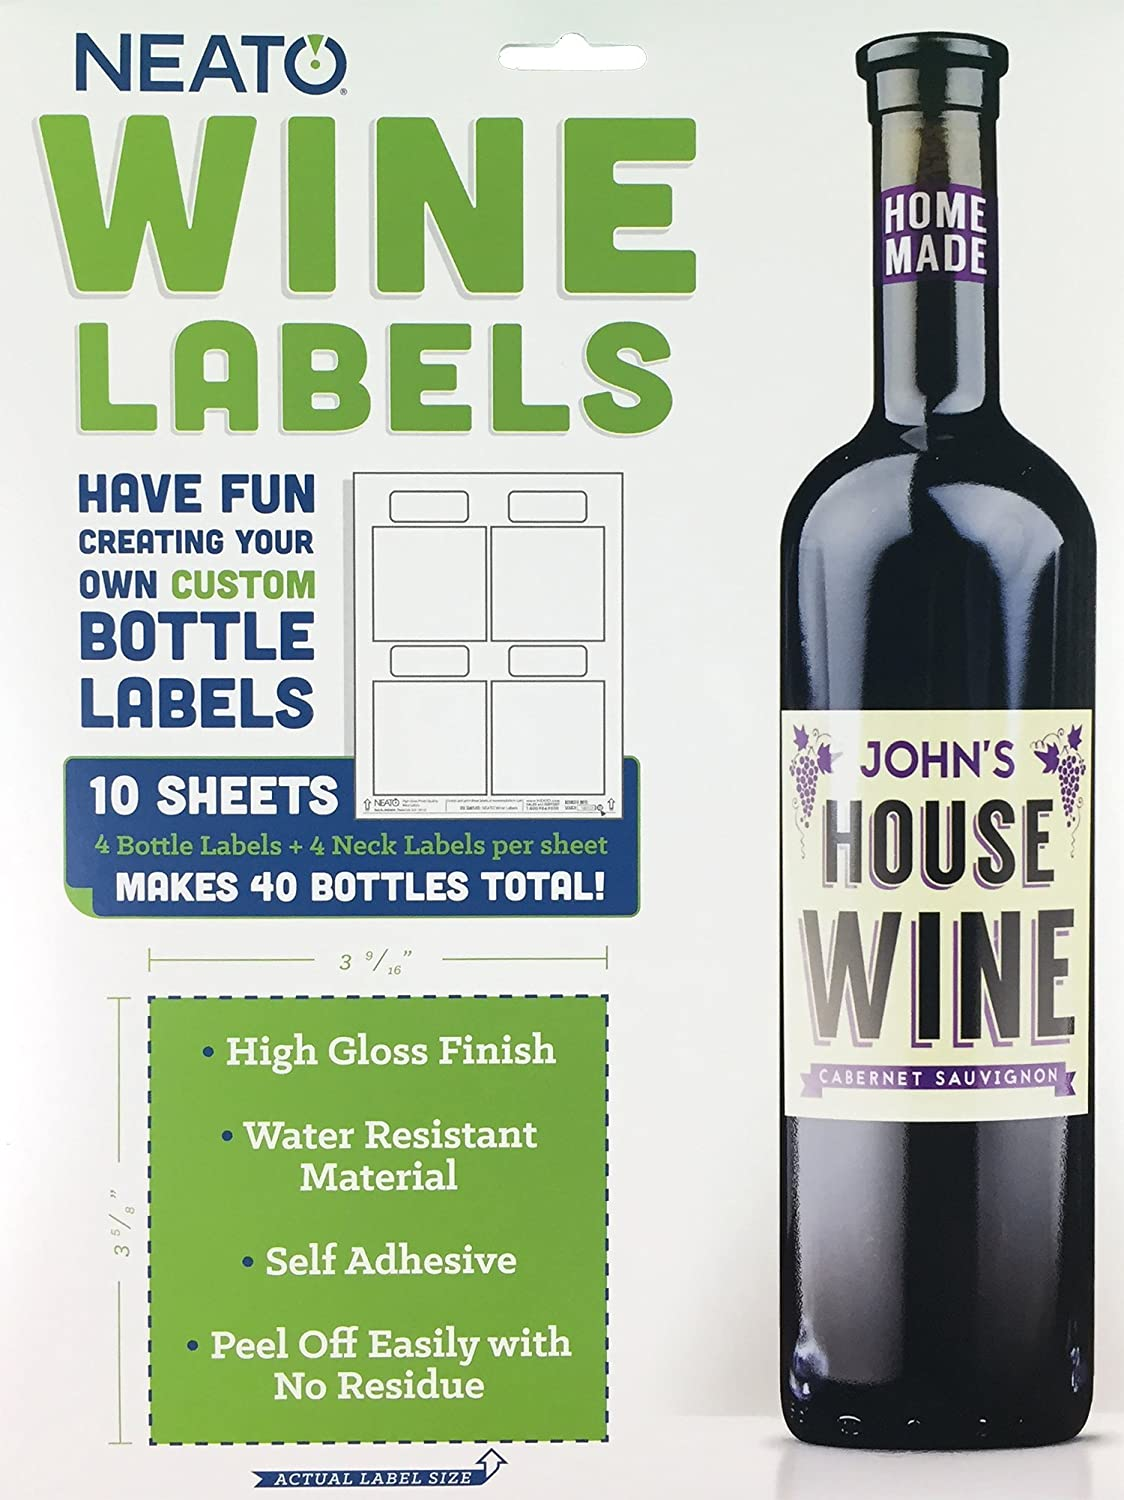 photograph about Printable Wine Bottle Label named Neato Blank Wine Bottle Labels - 40 Pack - Vinyl, Drinking water Resistant, For Ink Jet Printers